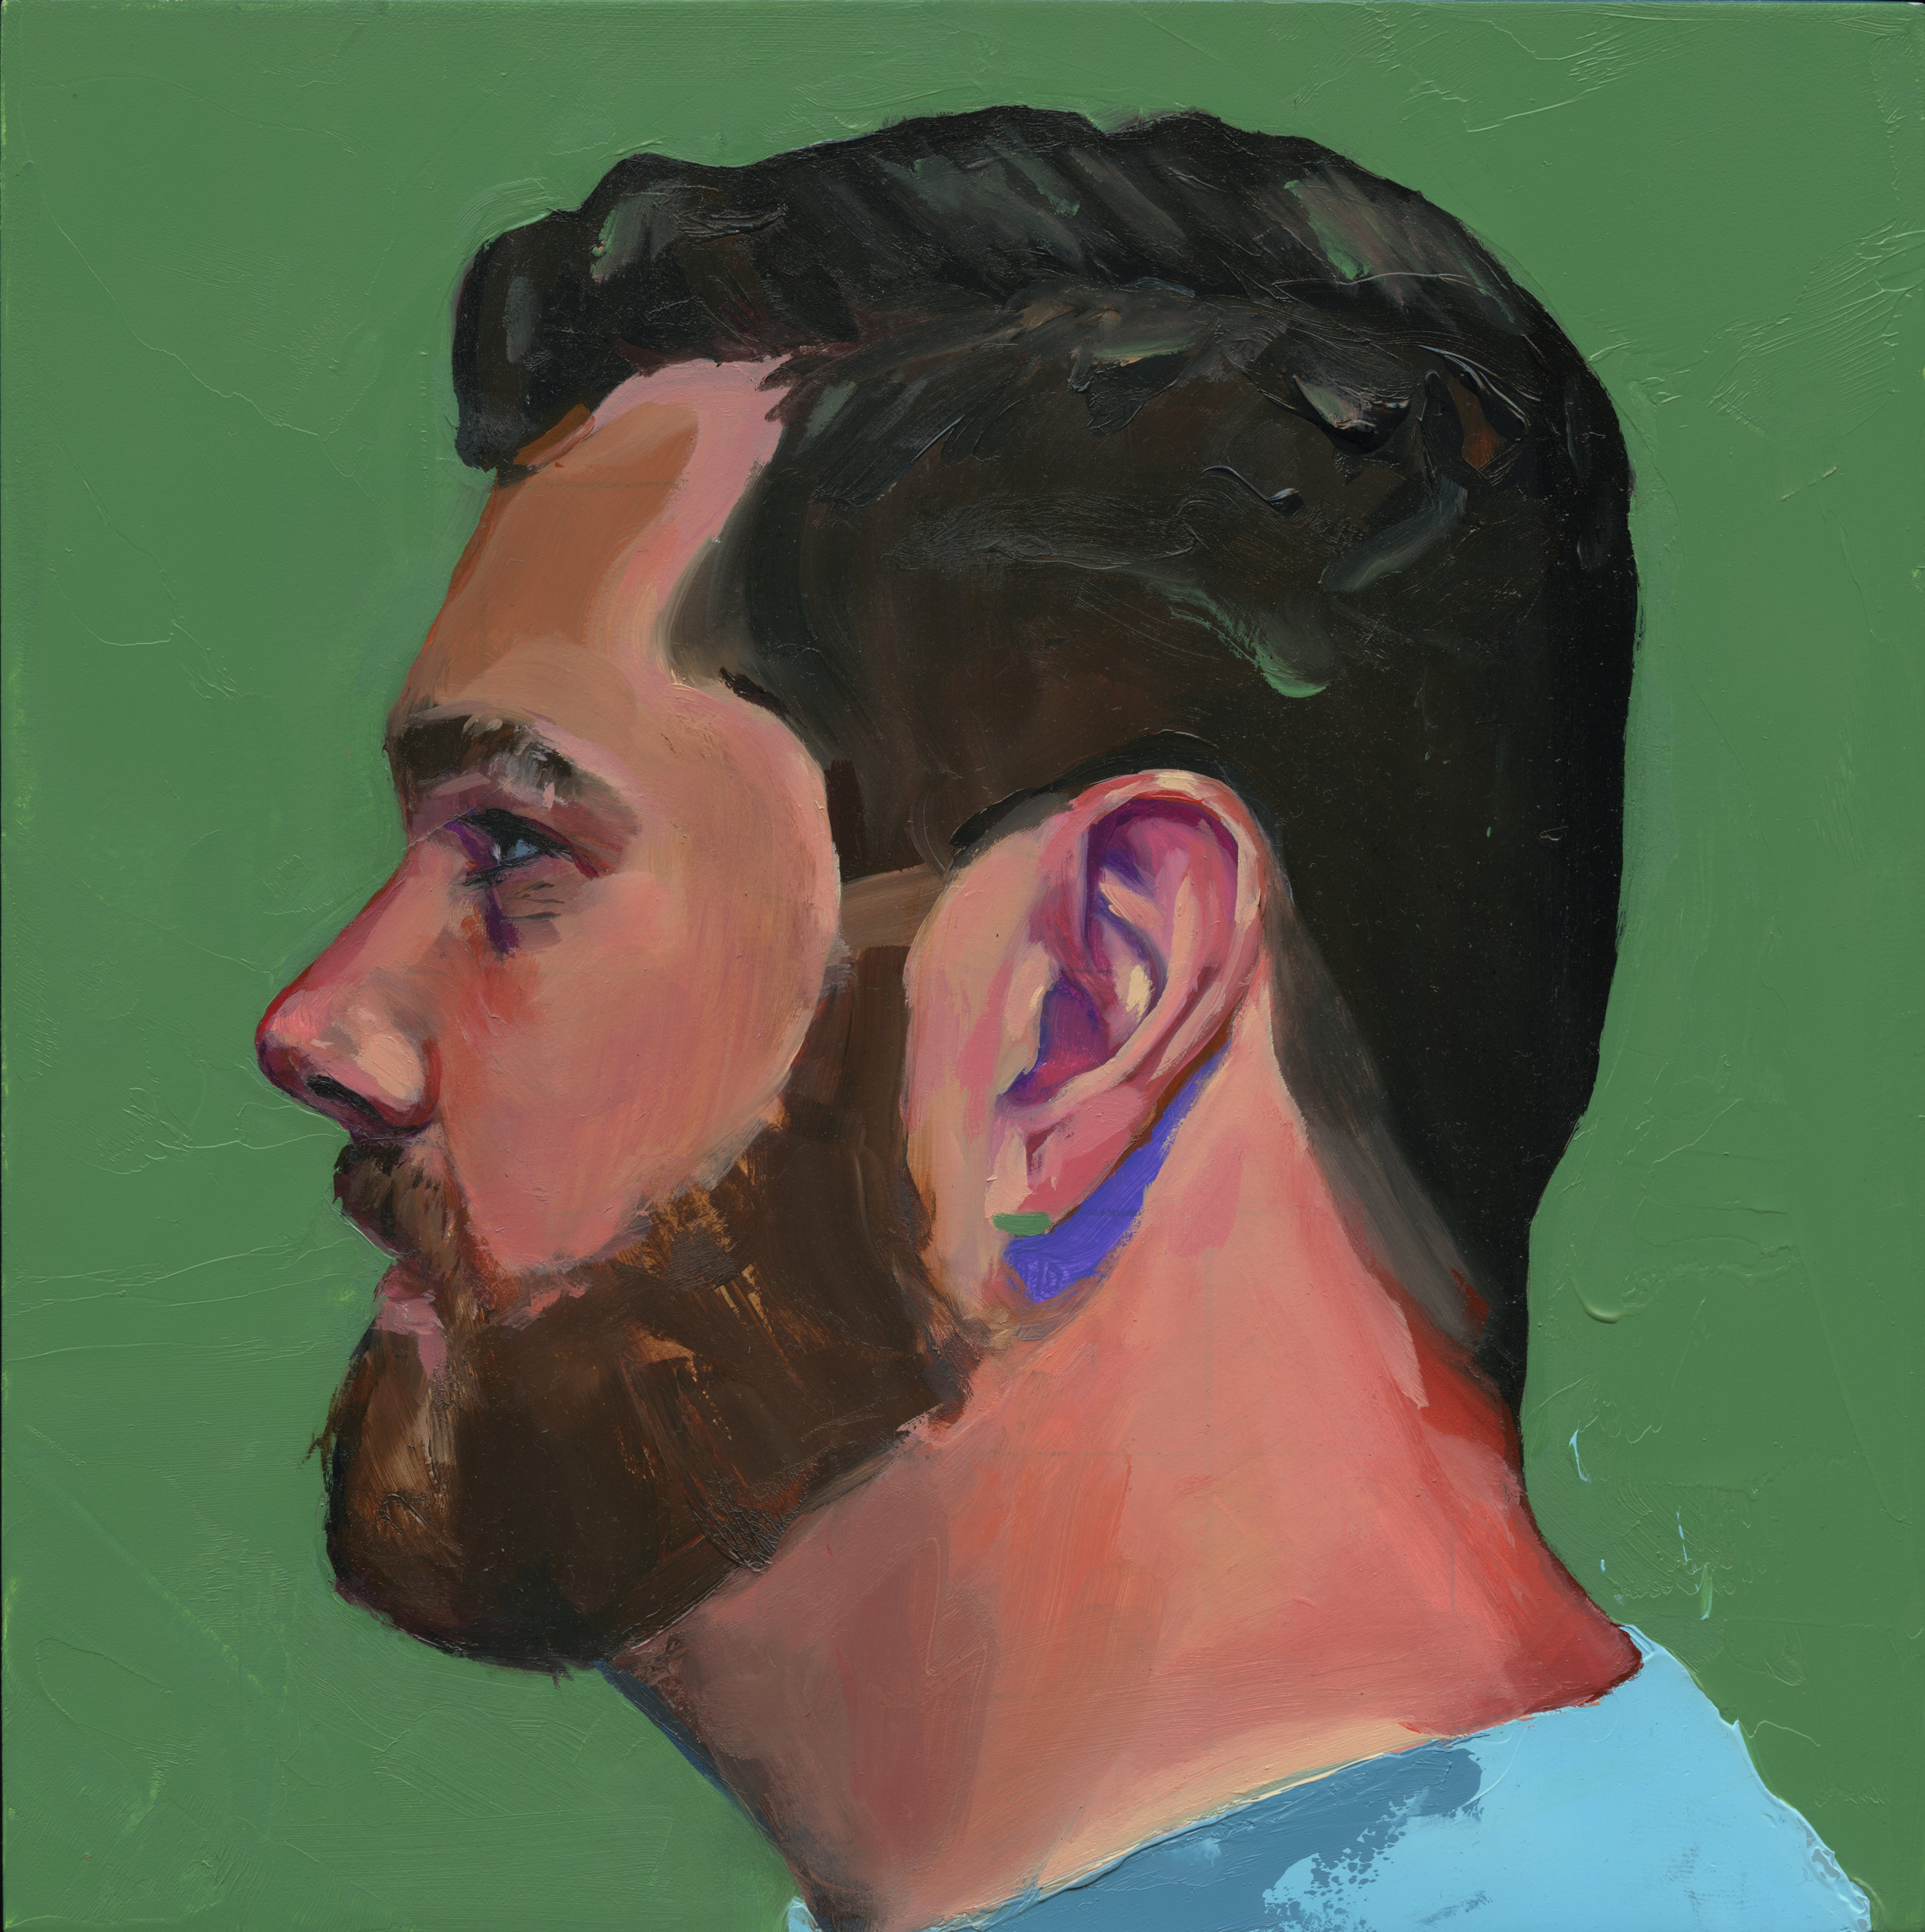 Profile Paintings - are a series of portraits with an aim to accomplish what our collection of online